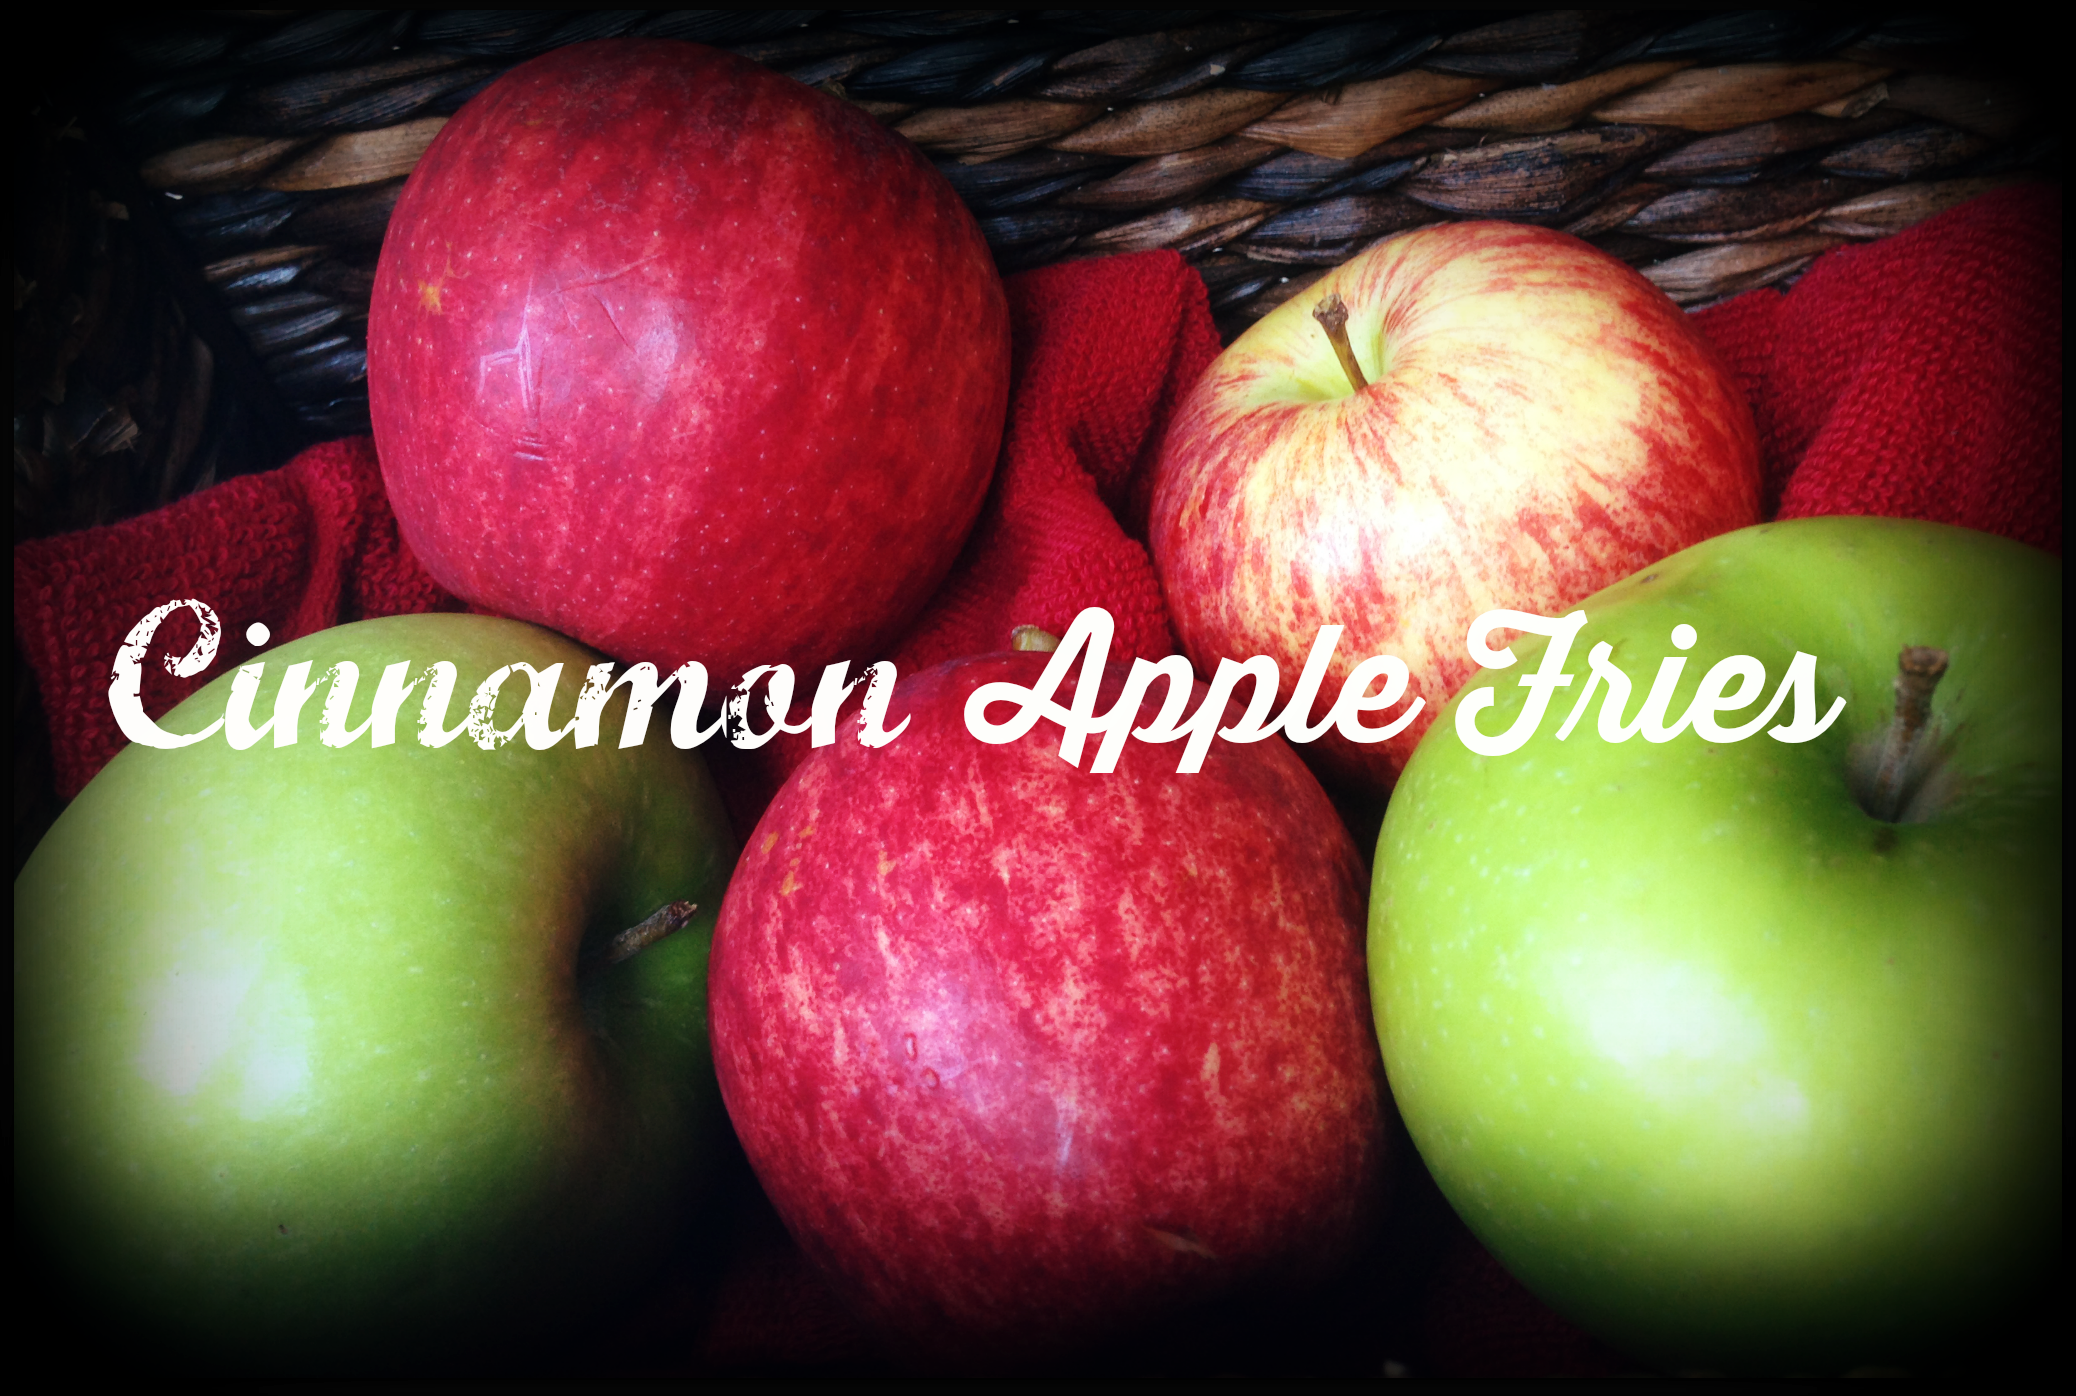 Cinnamon apple fries via http://www.thegoodmama.org